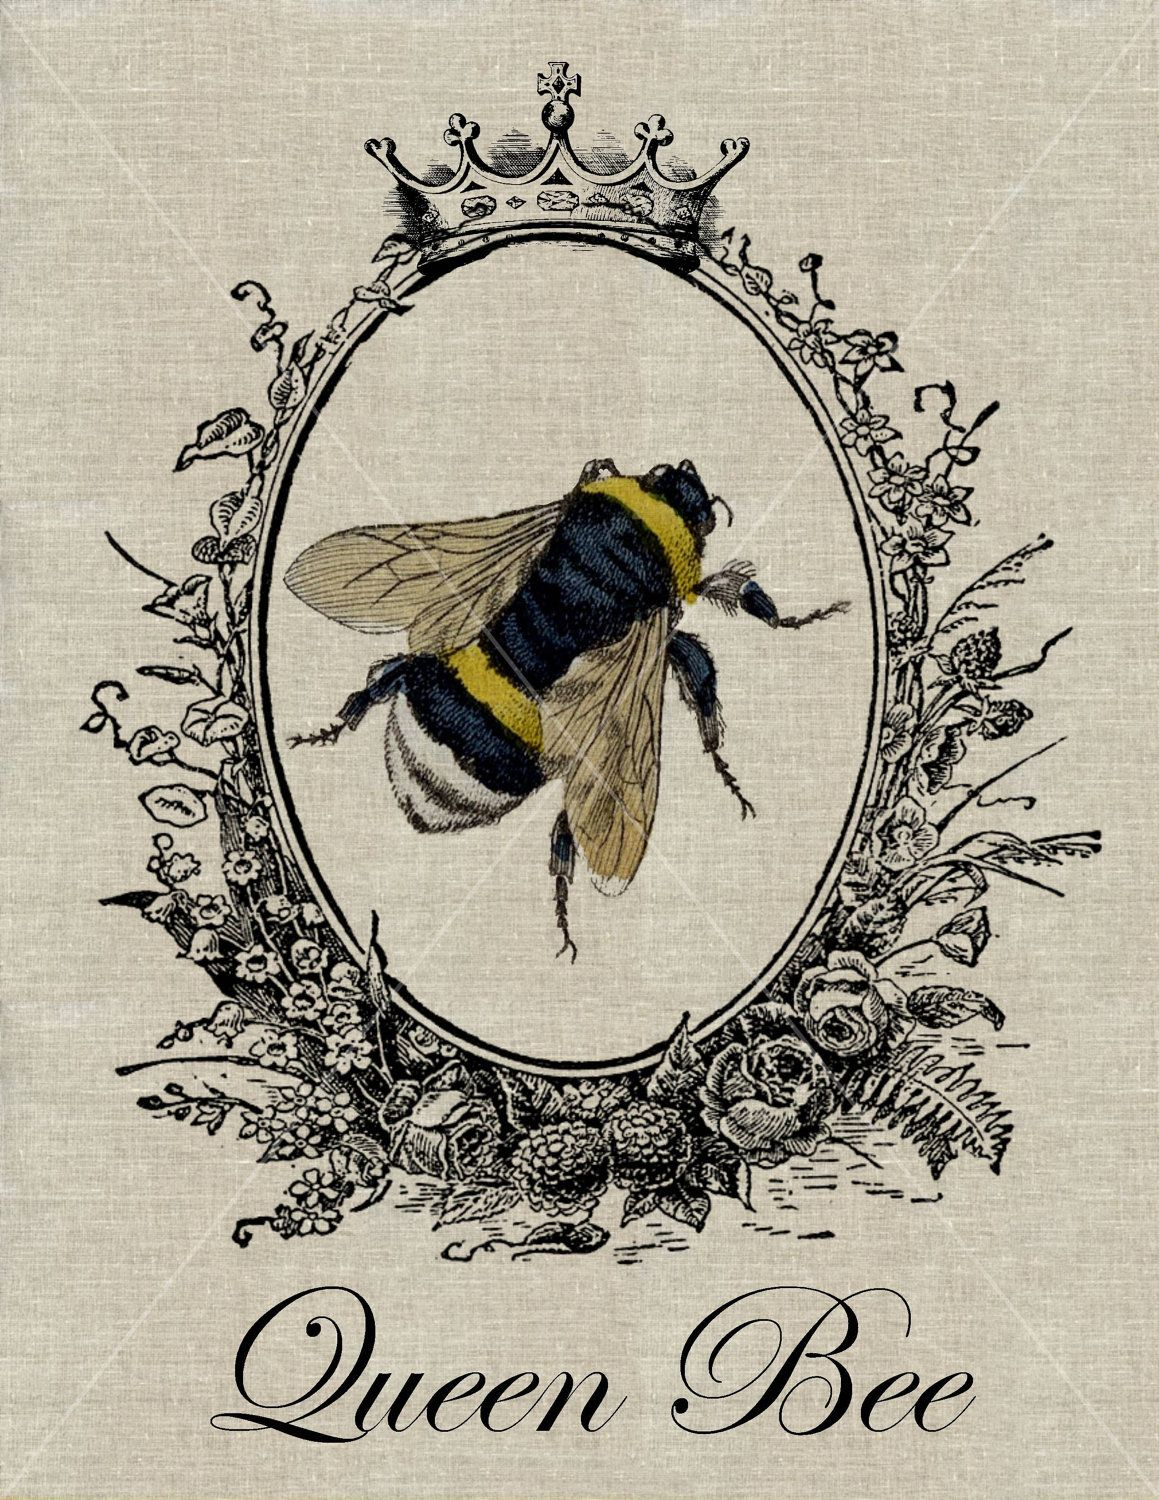 Fake Receipts To Print Pdf Queen Bee  Vintage Bumblebee Fabric Transfer Download  Buy  Get  Can You Return Stuff To Walmart Without A Receipt with Receipts Samples Queen Bee  Vintage Bumblebee Fabric Transfer Download  Buy  Get  Free  Via Invoice Books With Company Logo Excel